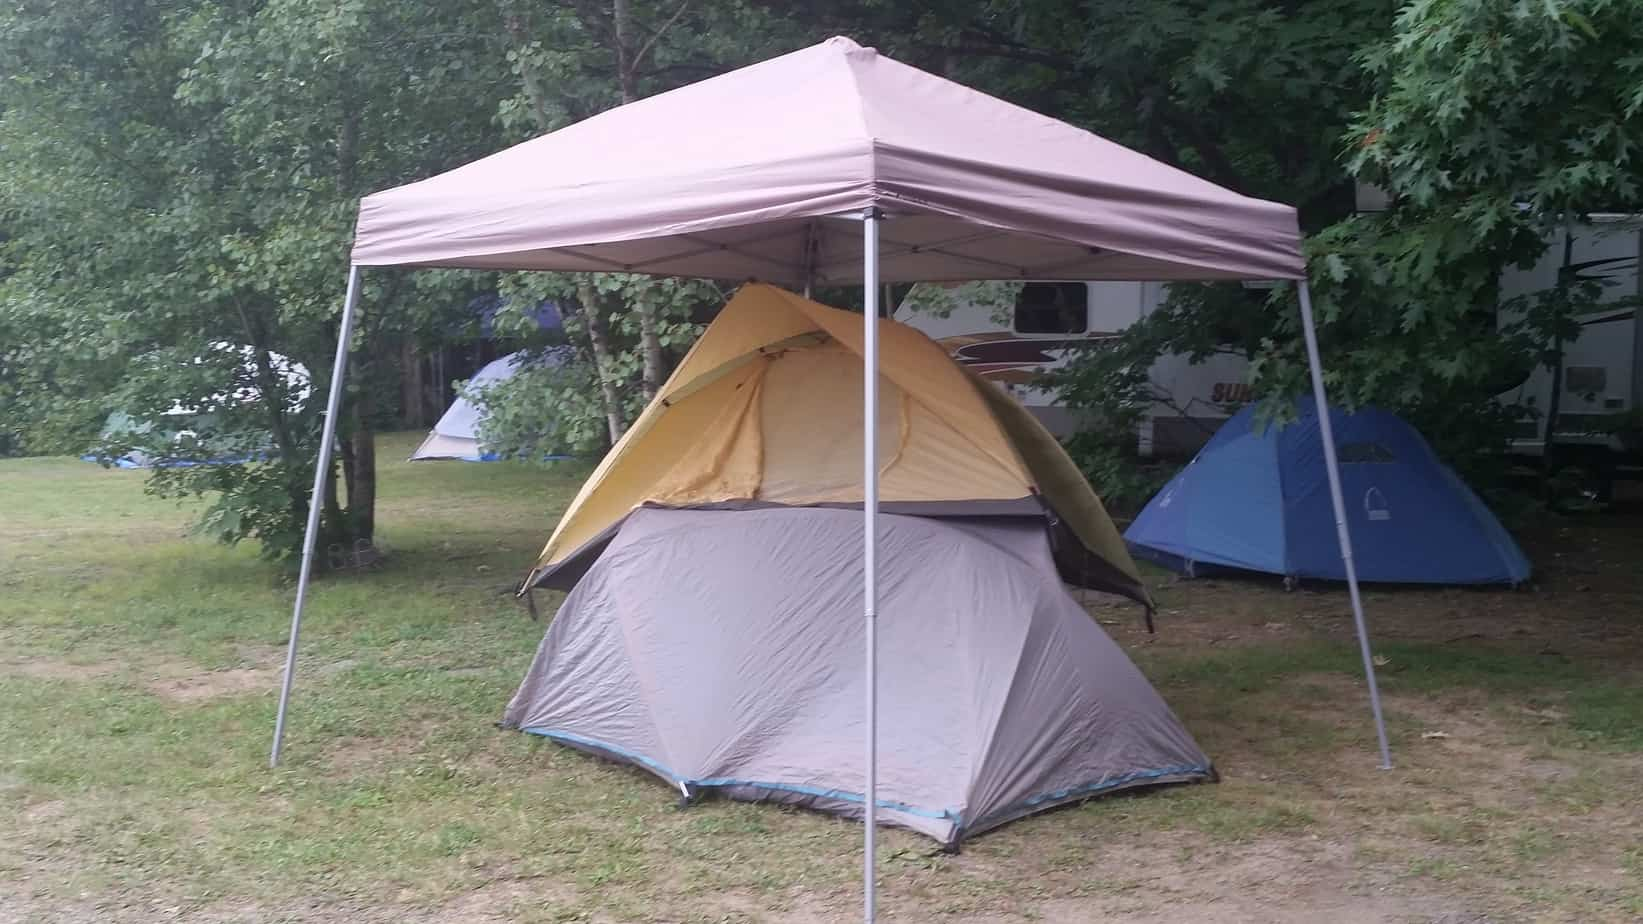 Pile of tents under a popup canopy & How To Stay Dry While Camping   Must Go Camping